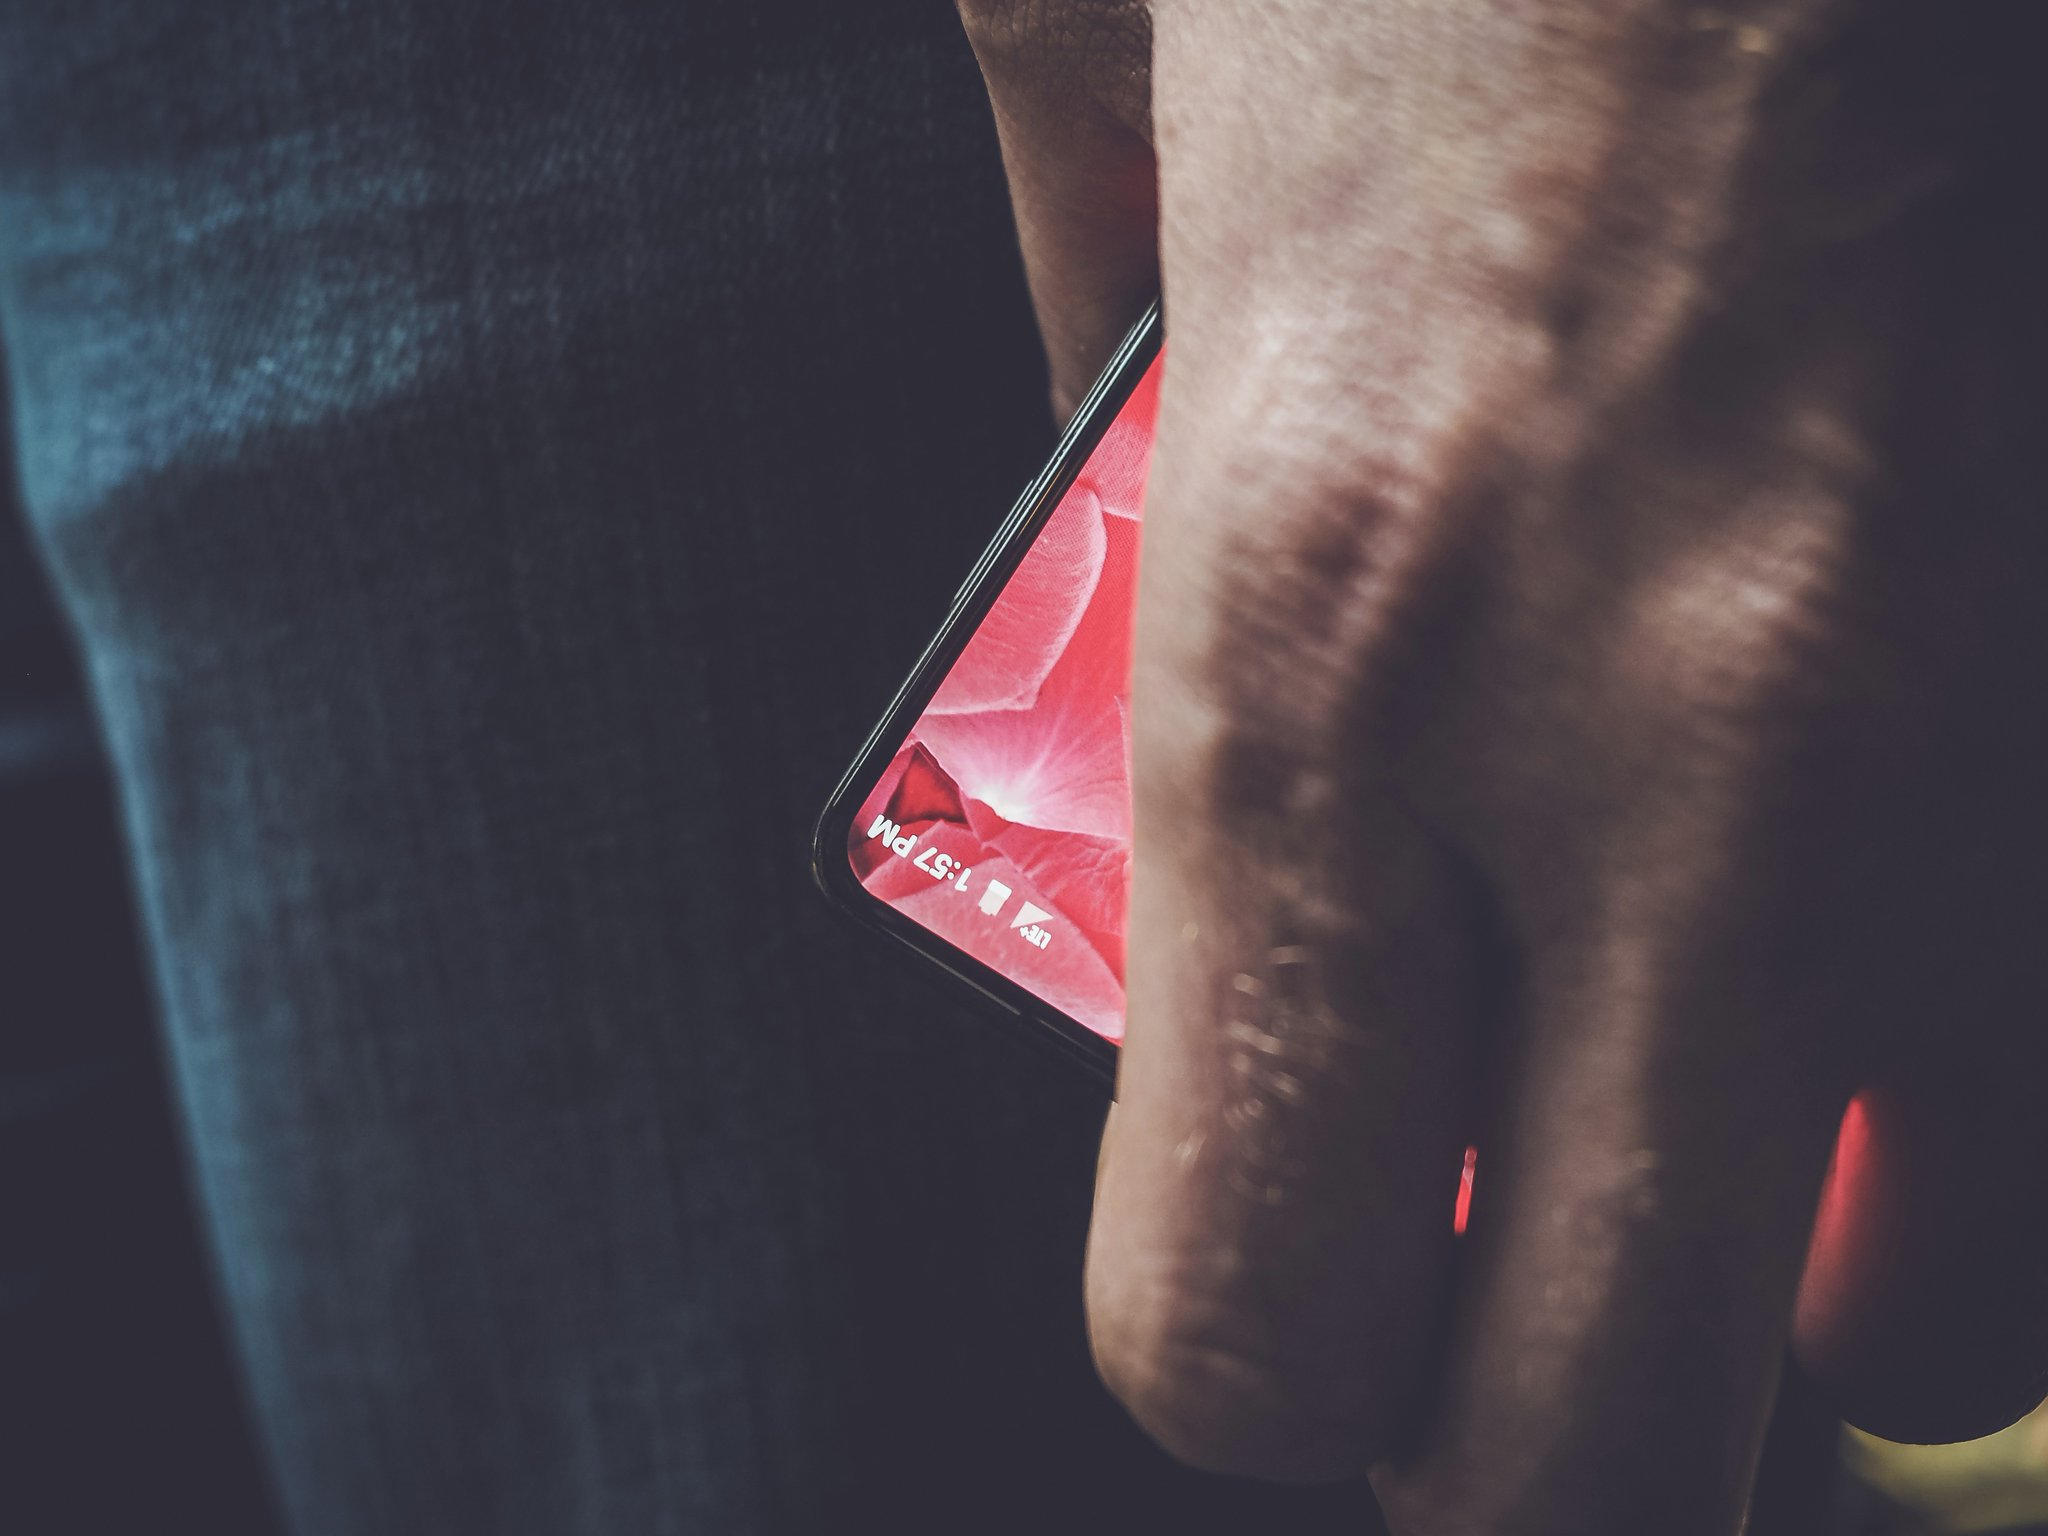 Andy Rubin's Essential Smartphone Launch Likely On May 30th